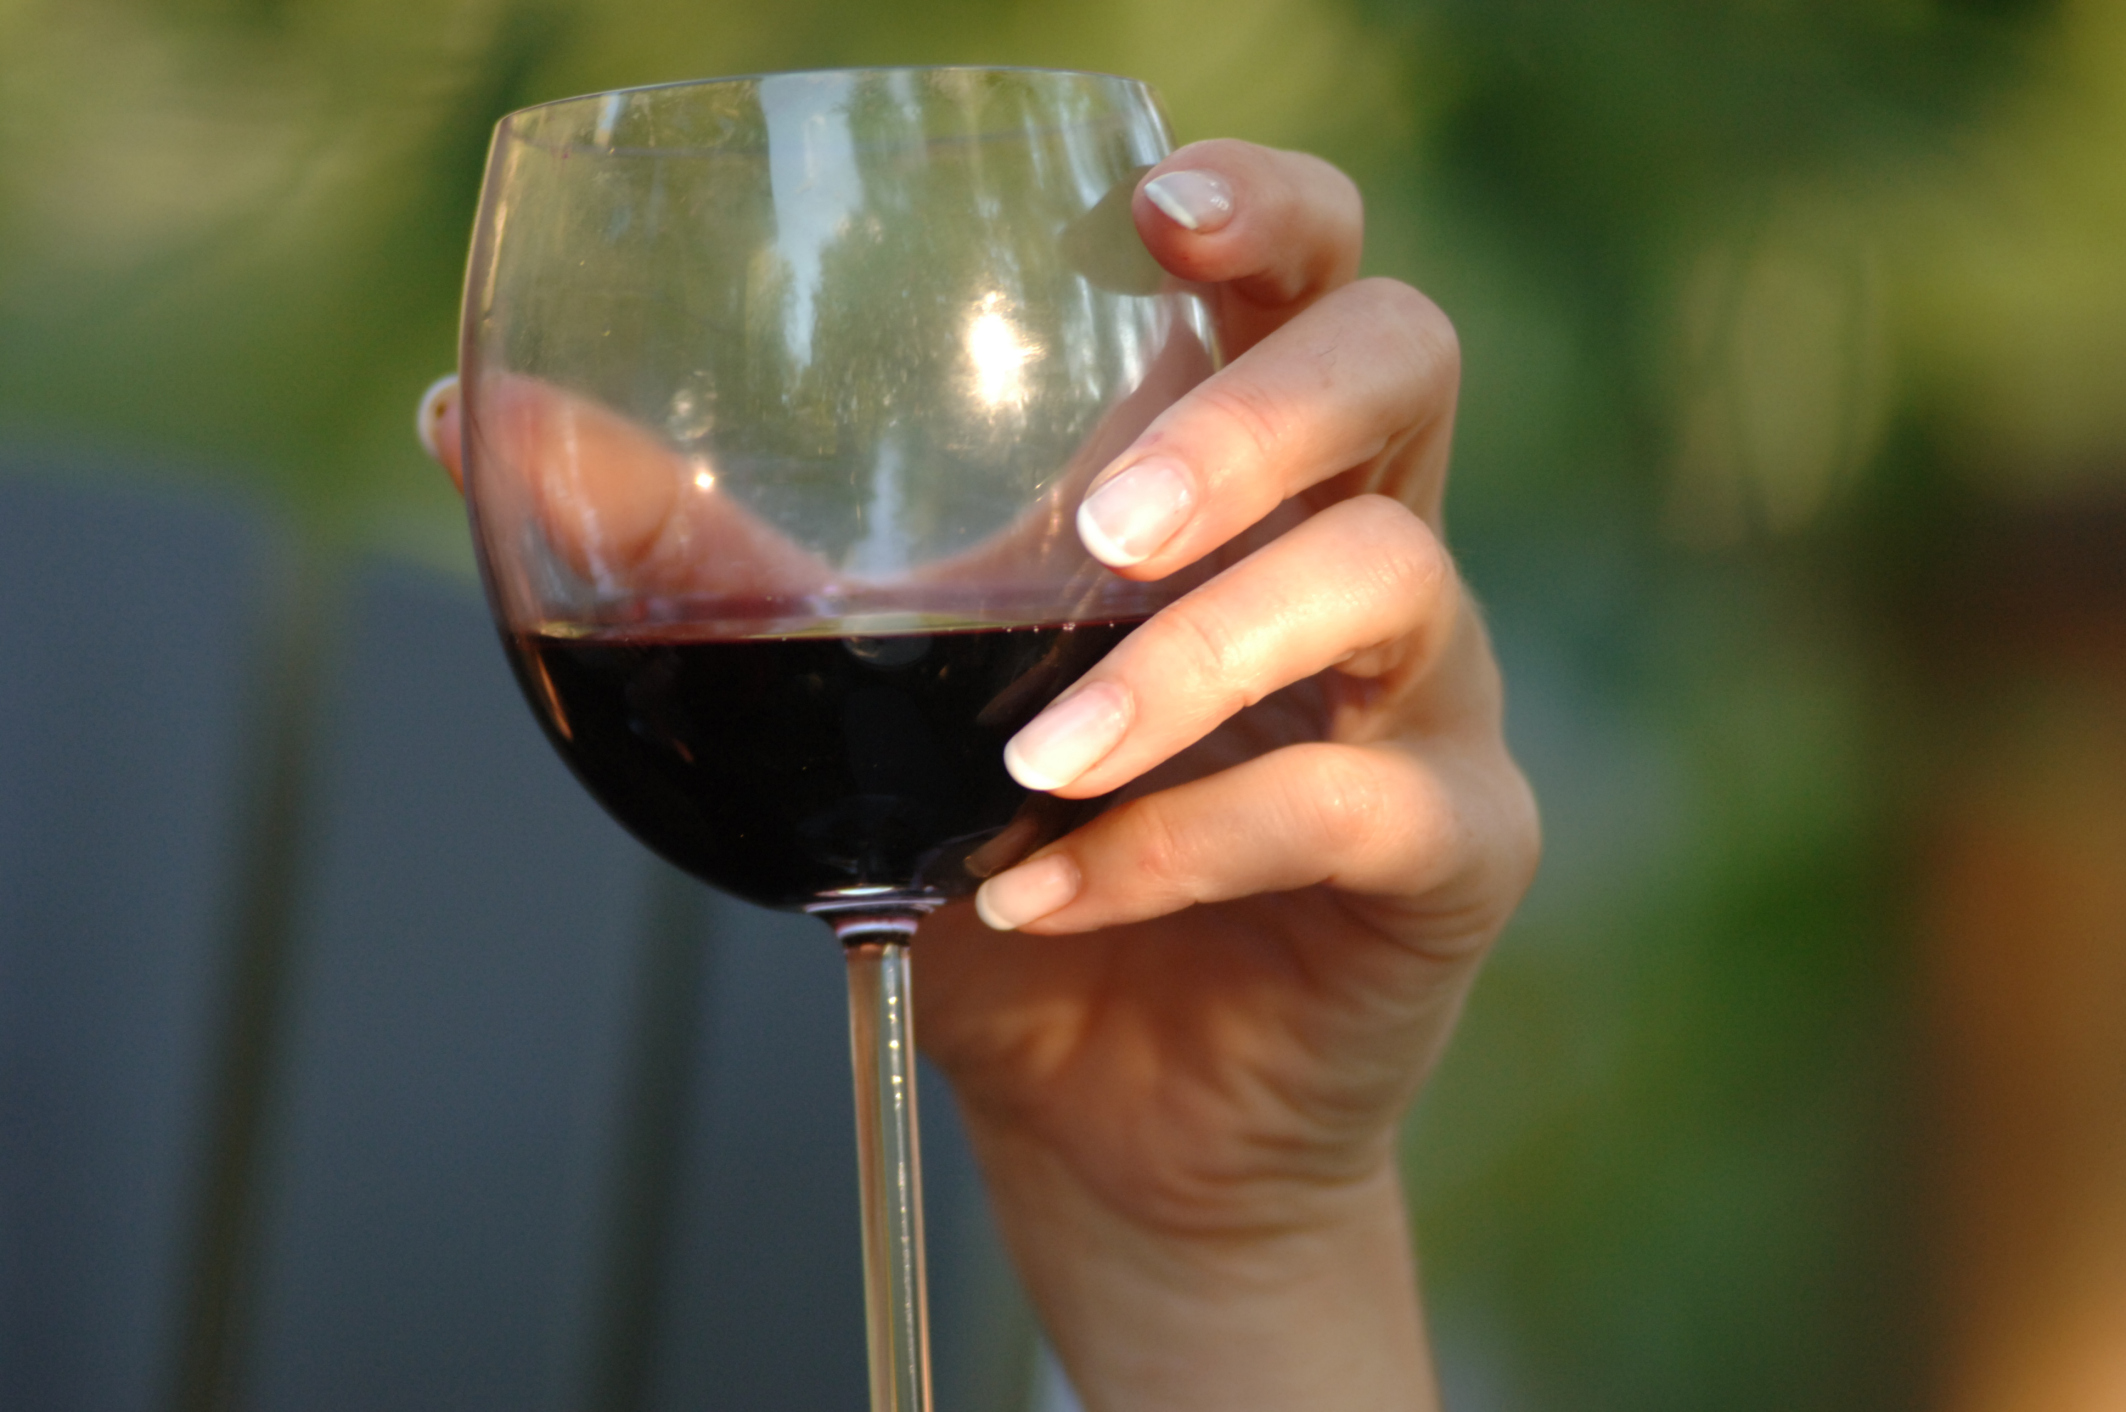 can beer or wine cause facial rash